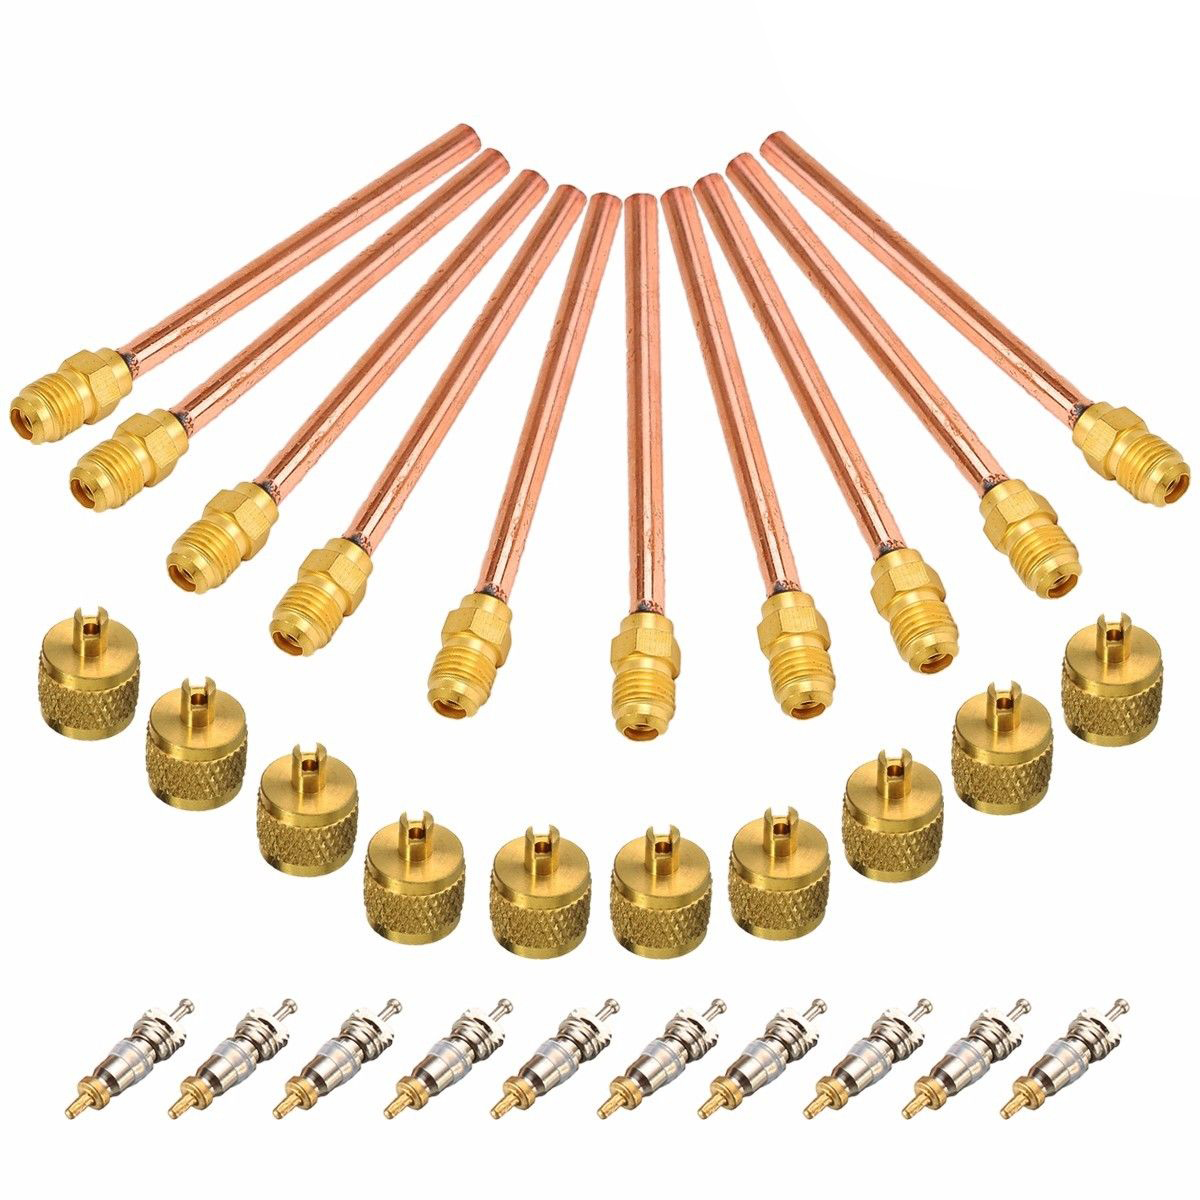 10pcs/lot Durable Service/Access Valve 1/4 SAE * 1/4 OD * 4 Stem Core For AC Air Conditioning Refrigeration Recharge Mayitr 10pcs lot nt5tu64m16gg ac